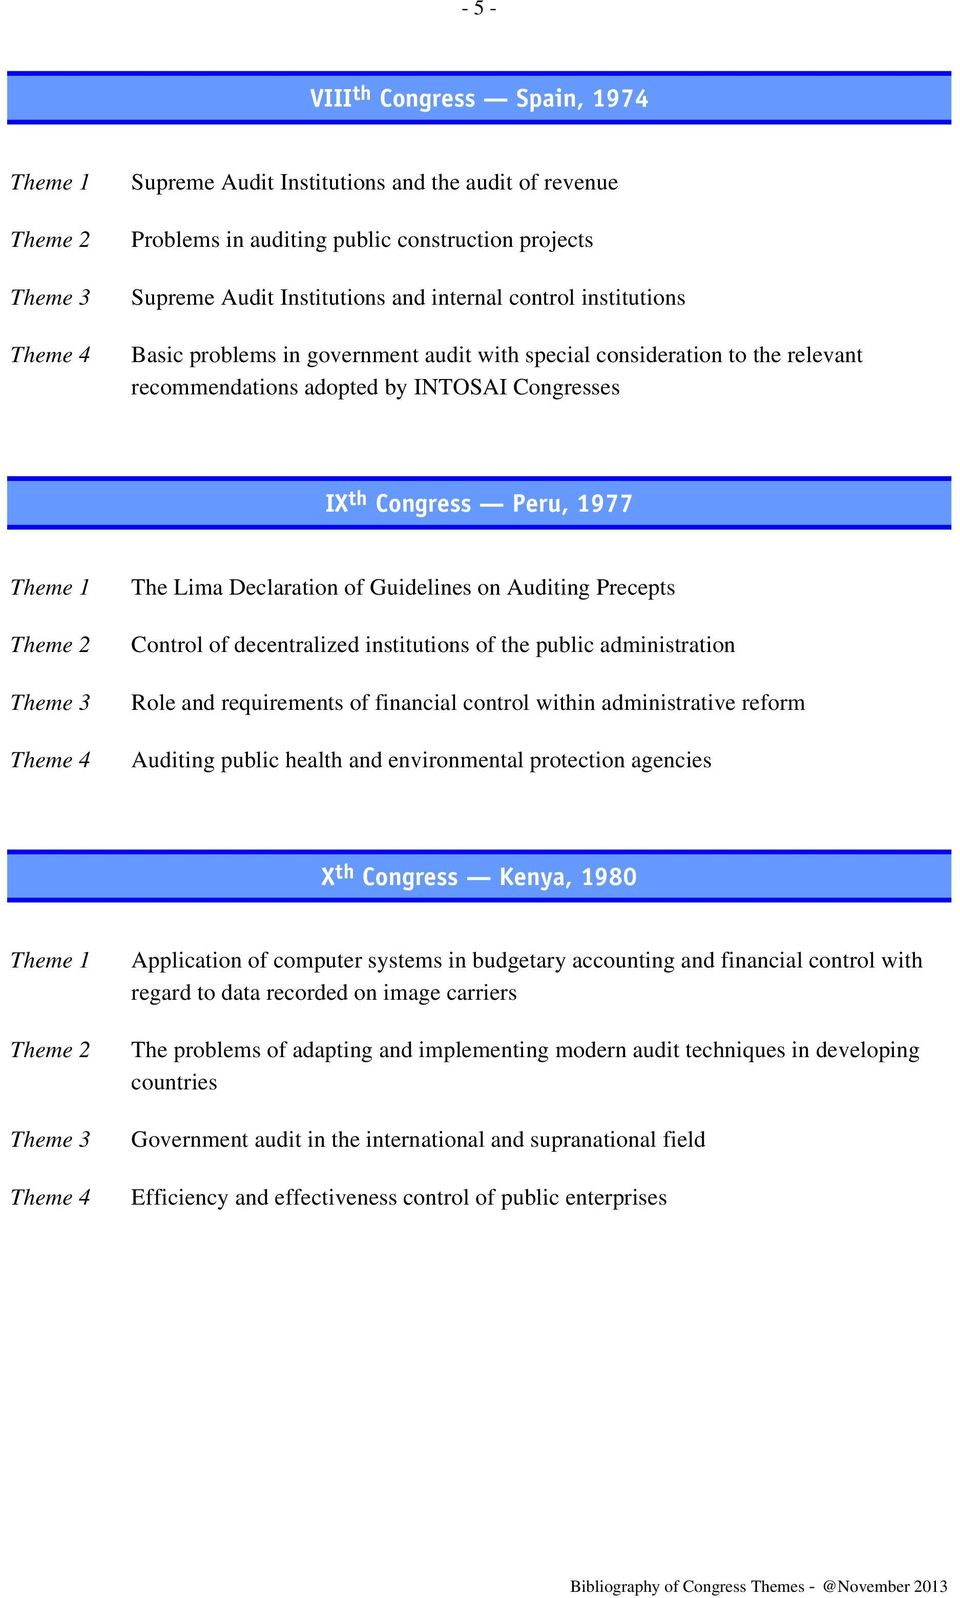 Precepts Control of decentralized institutions of the public administration Role and requirements of financial control within administrative reform Auditing public health and environmental protection